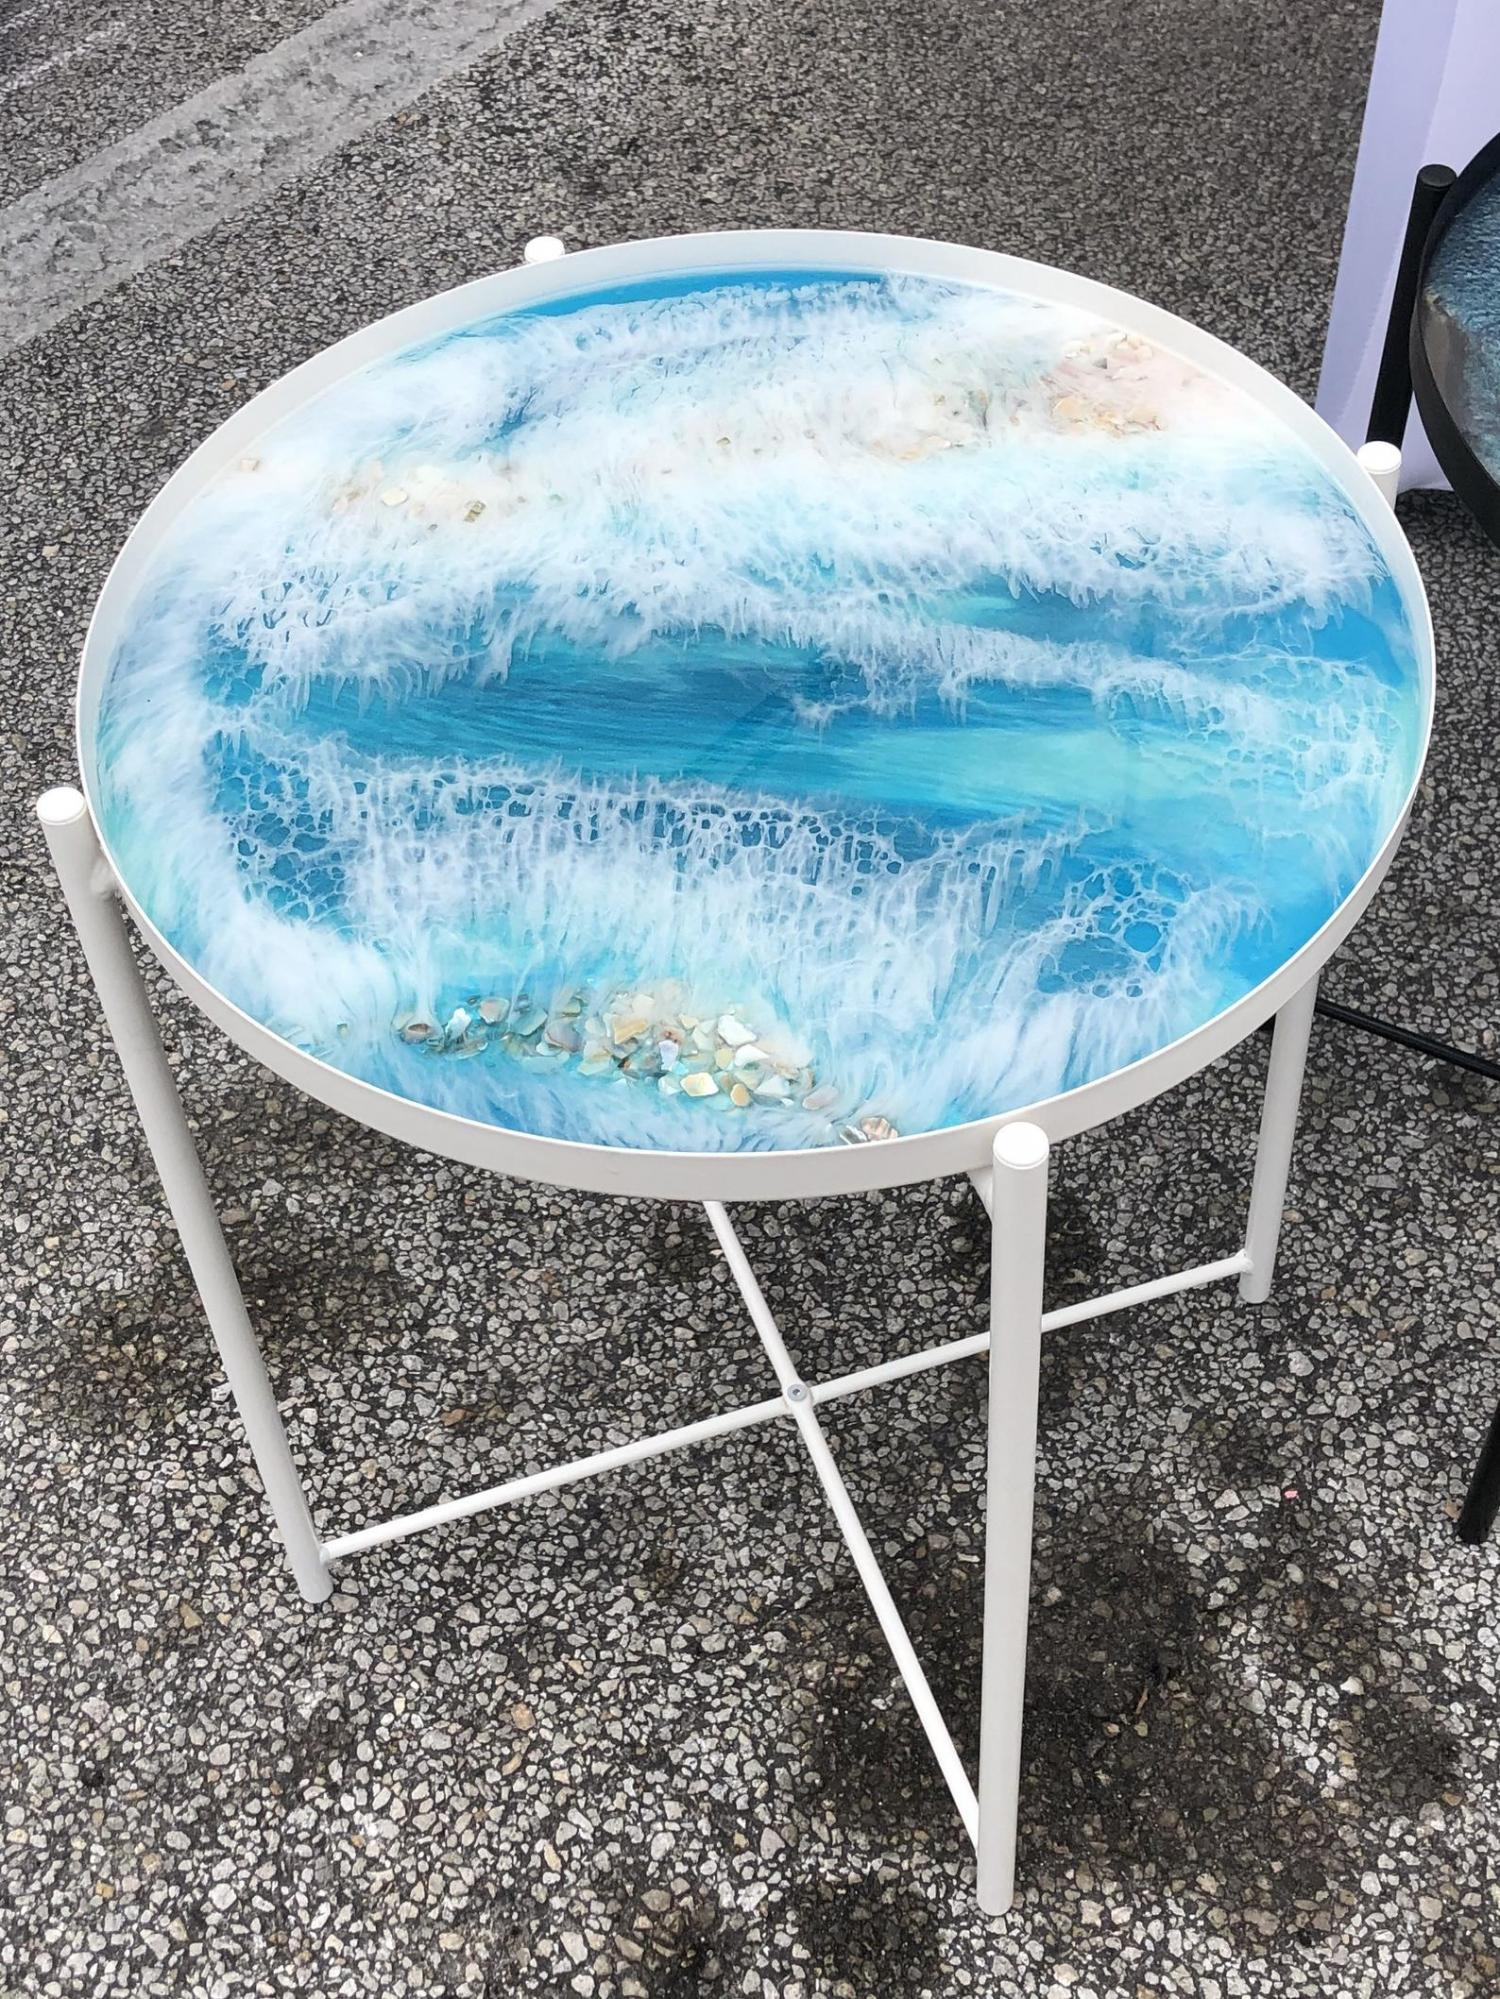 small circular epoxy table is made to look like a piece of art with beautiful ocean waves